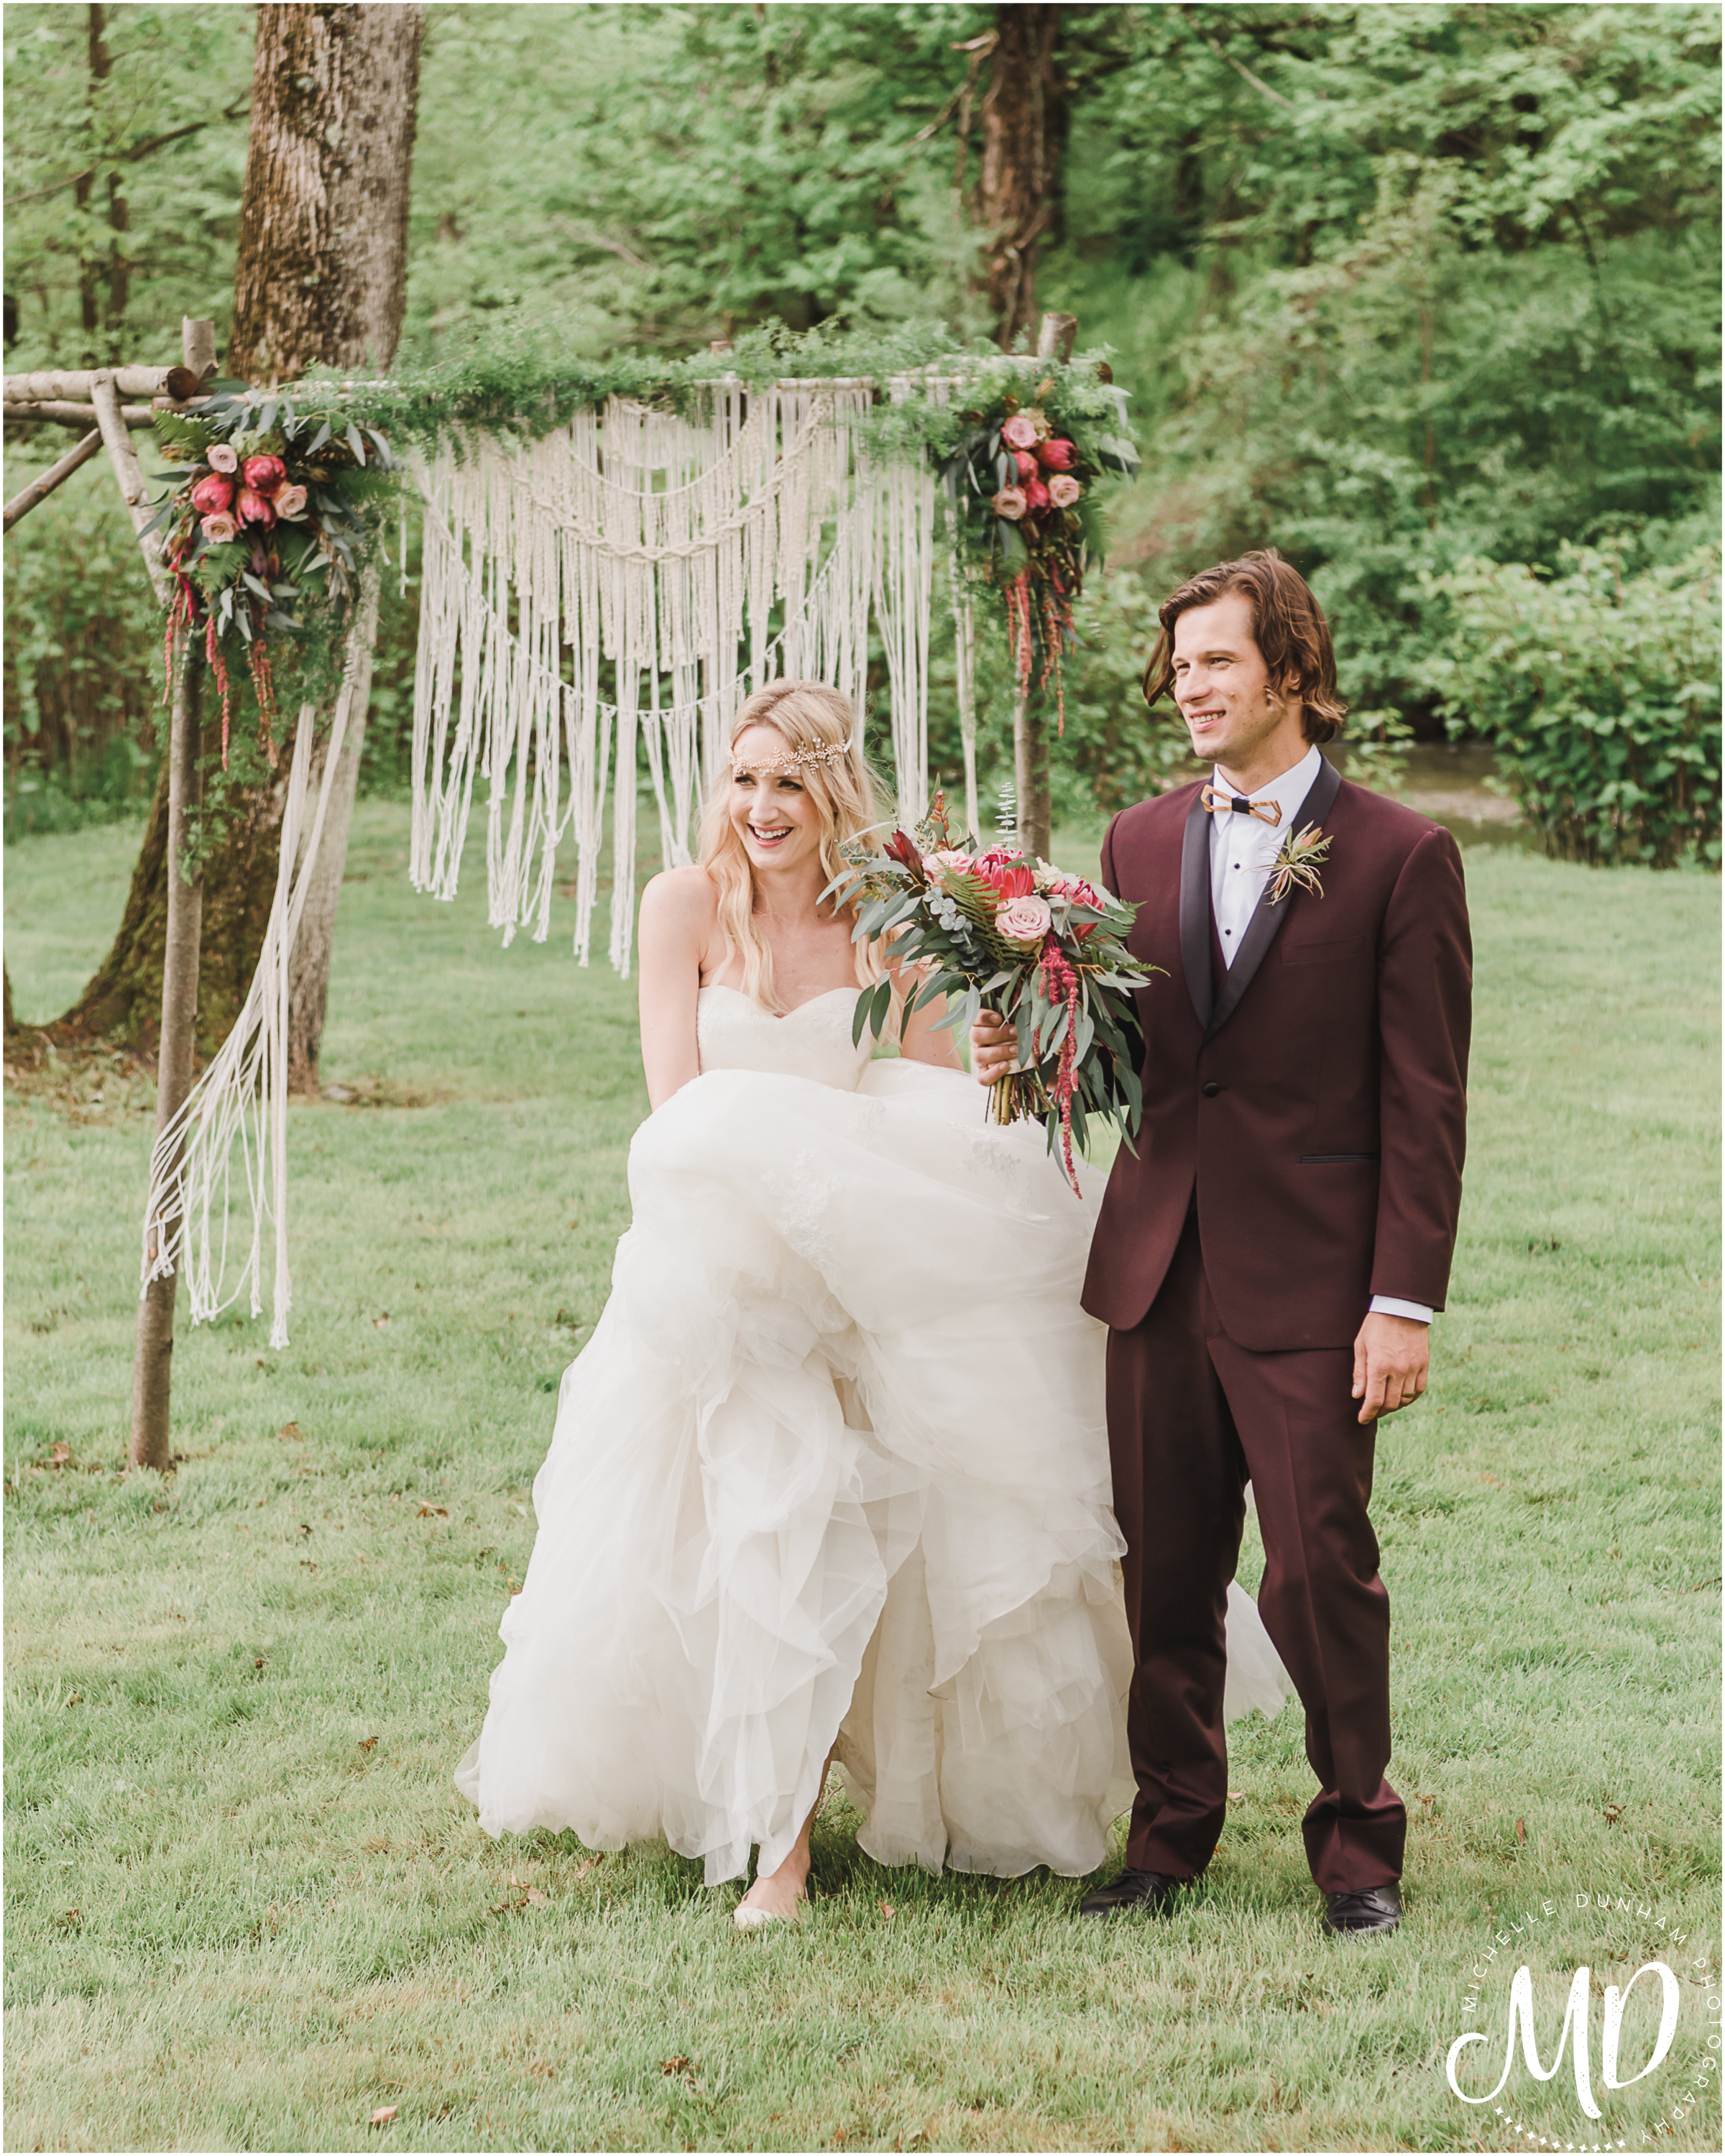 Michelle Dunham Photography_Boho_BrideandGroom_8.jpg